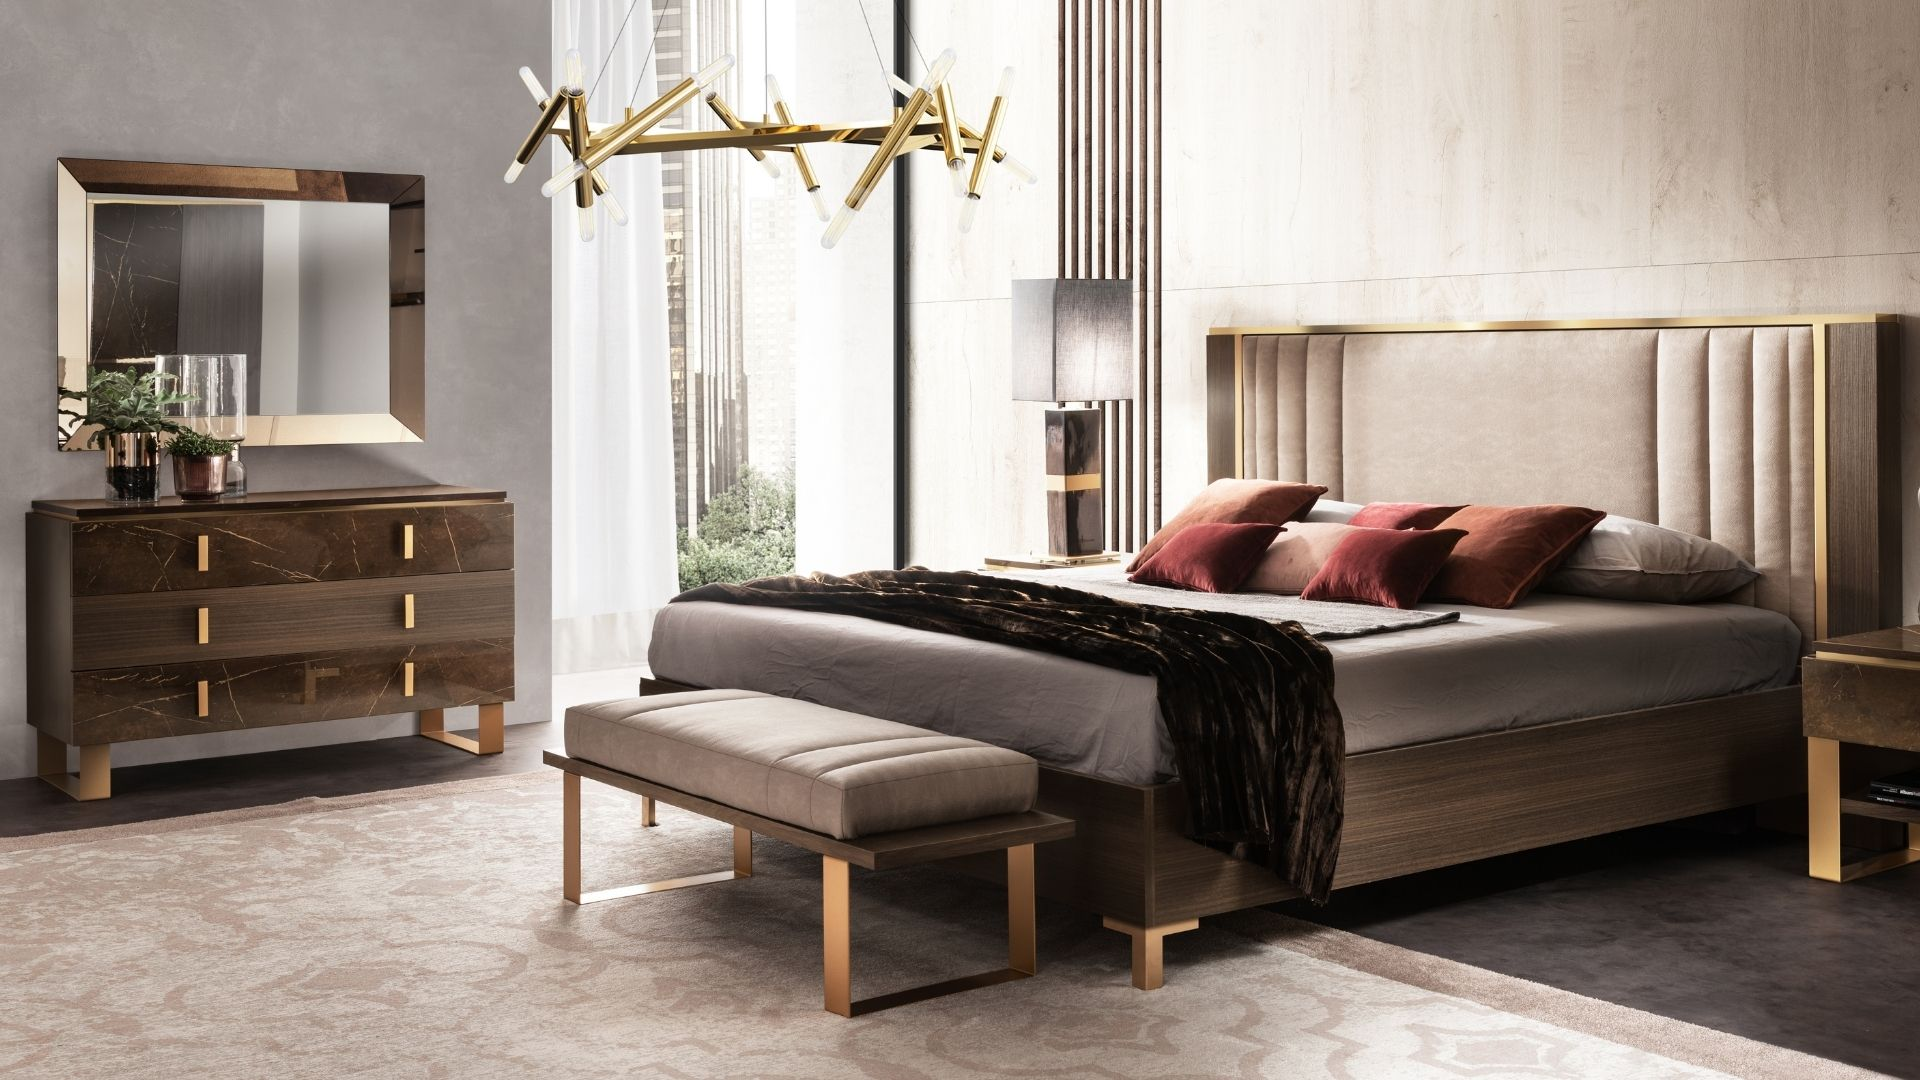 Bedroom with intimate and relaxing atmosphere